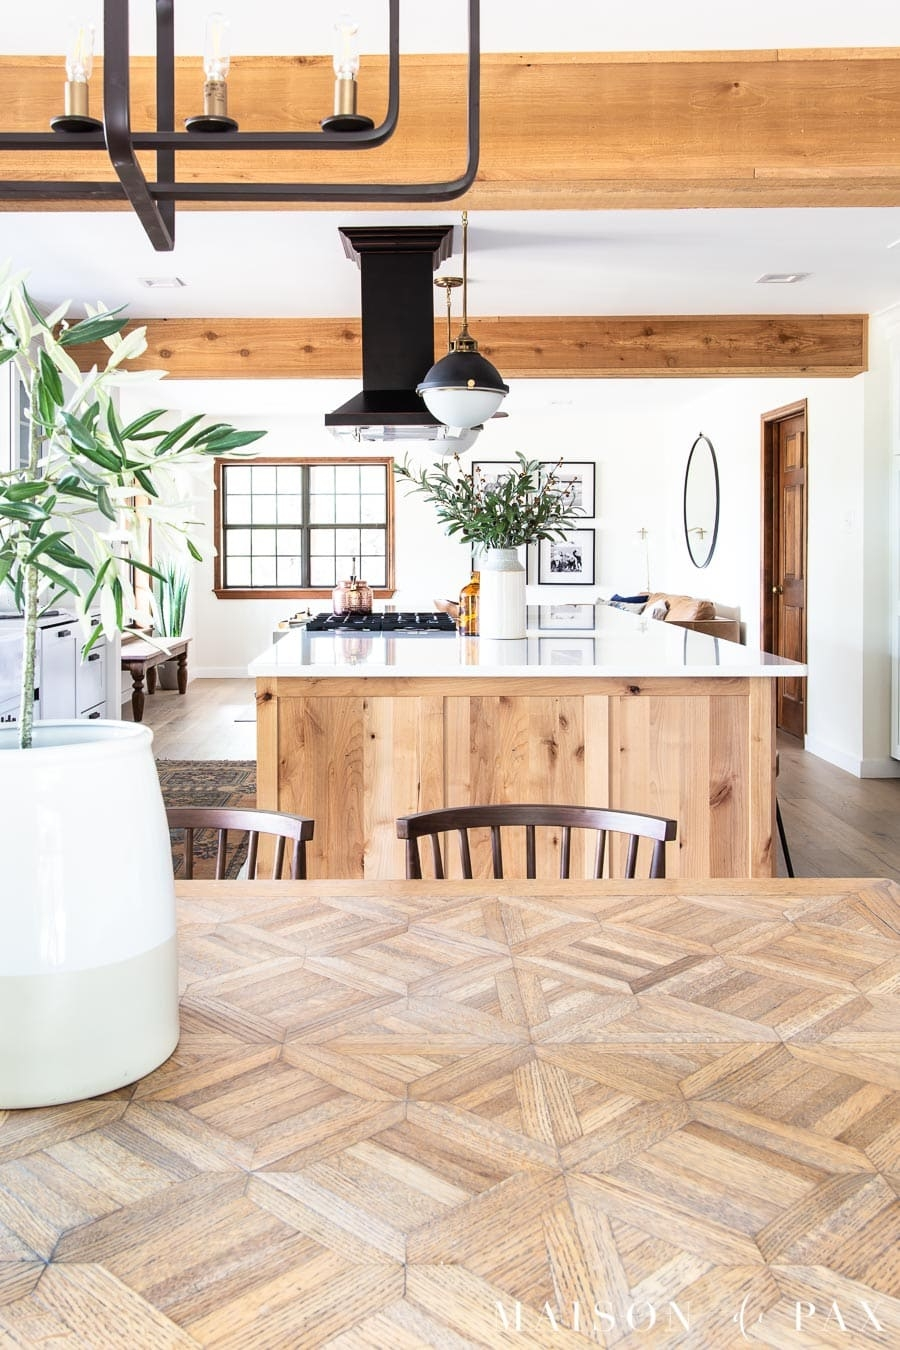 how to refinish a table with a natural wood look maison de pax